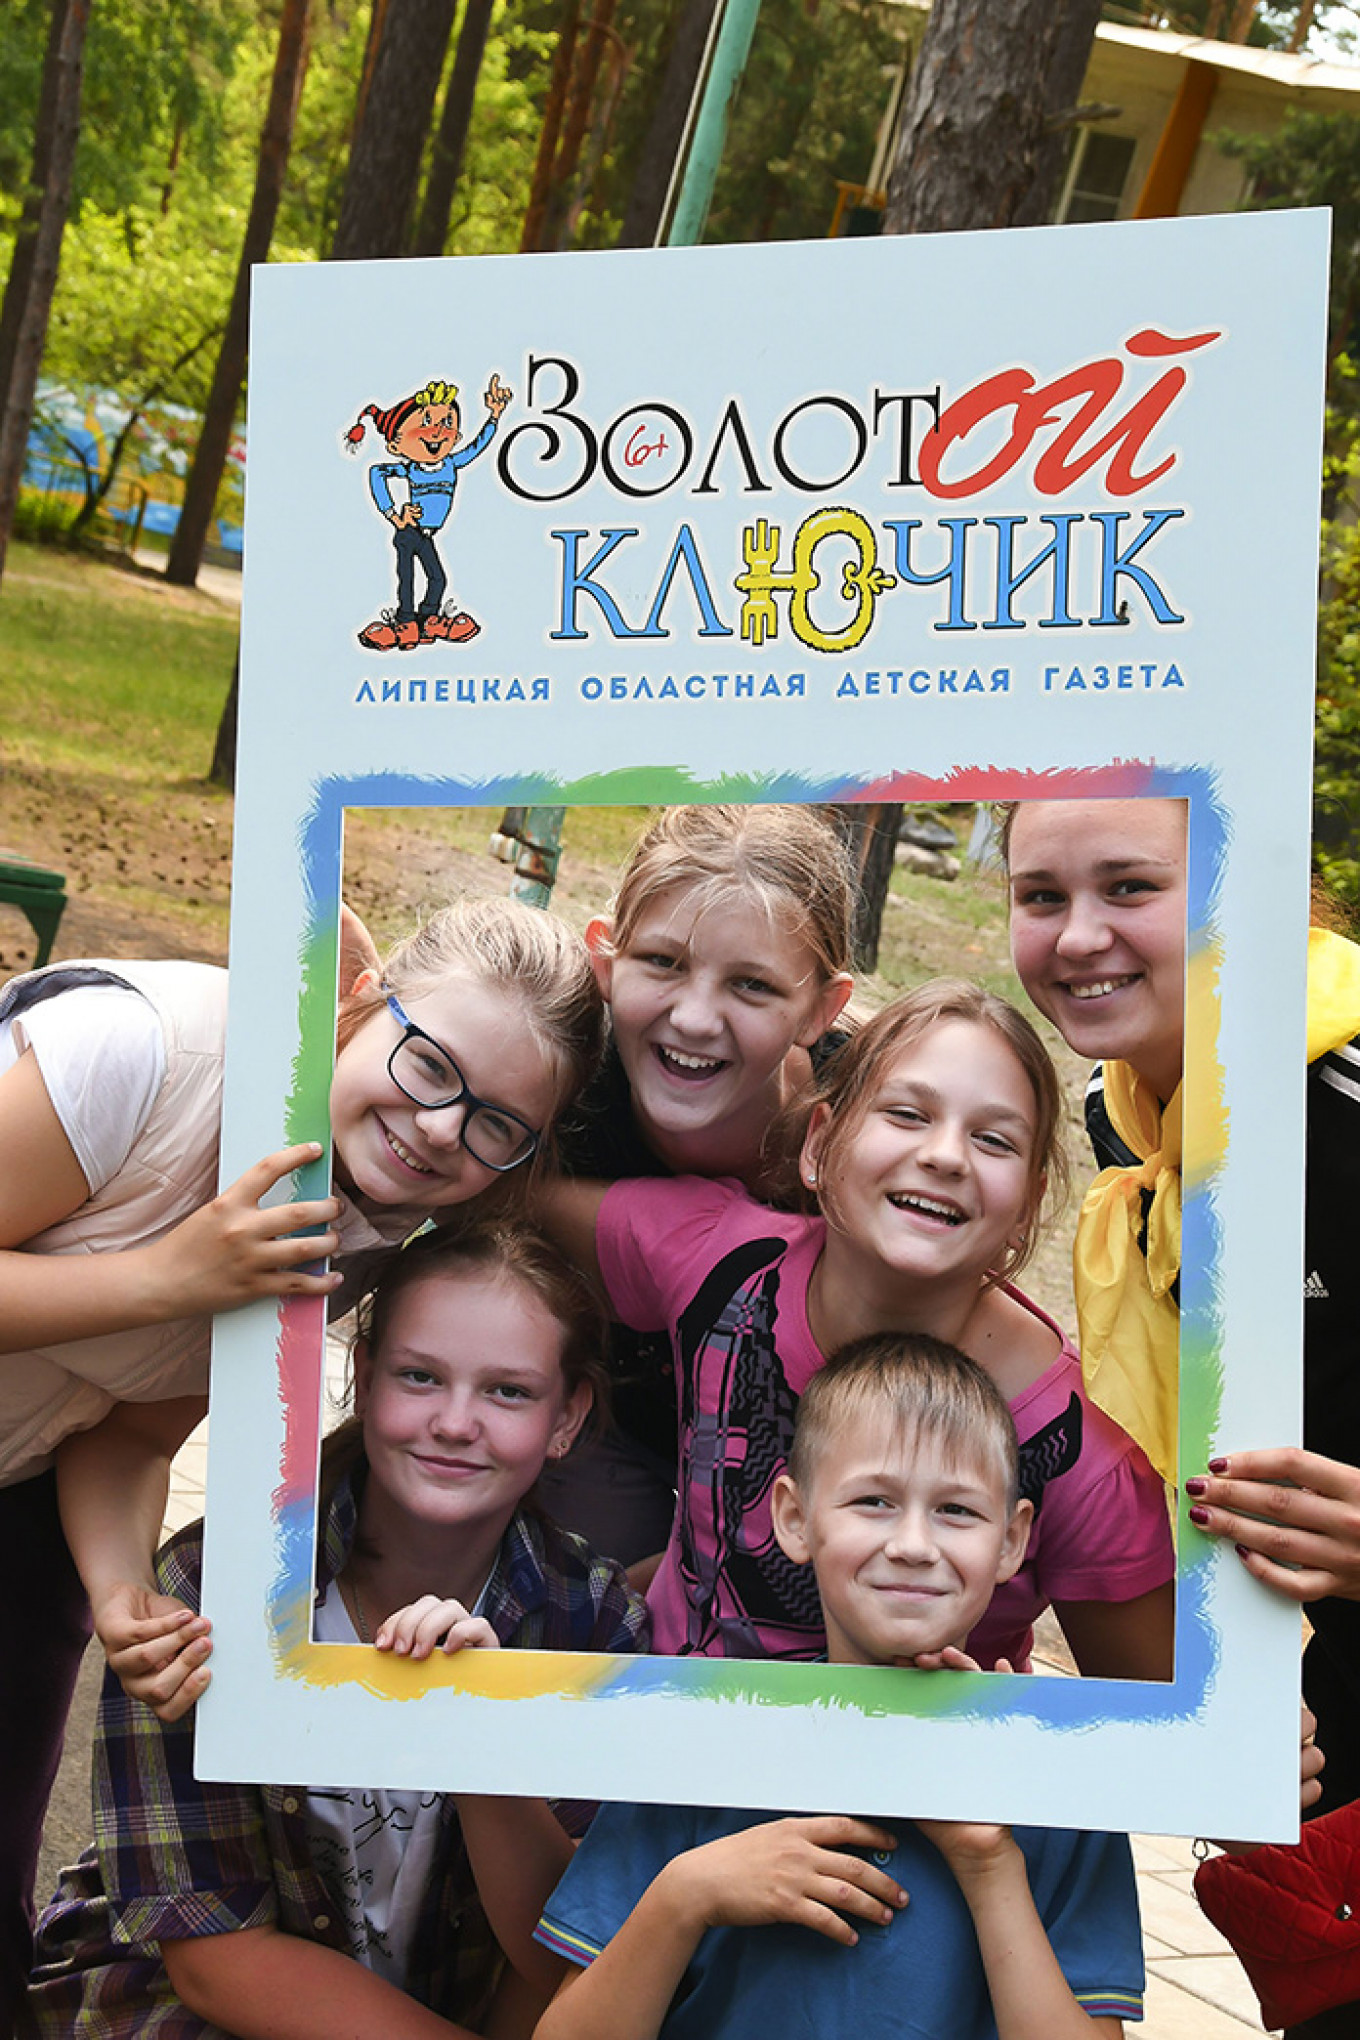 Special events make local heroes out of readers.				 				Courtesy of Zolotoi Klyuchik